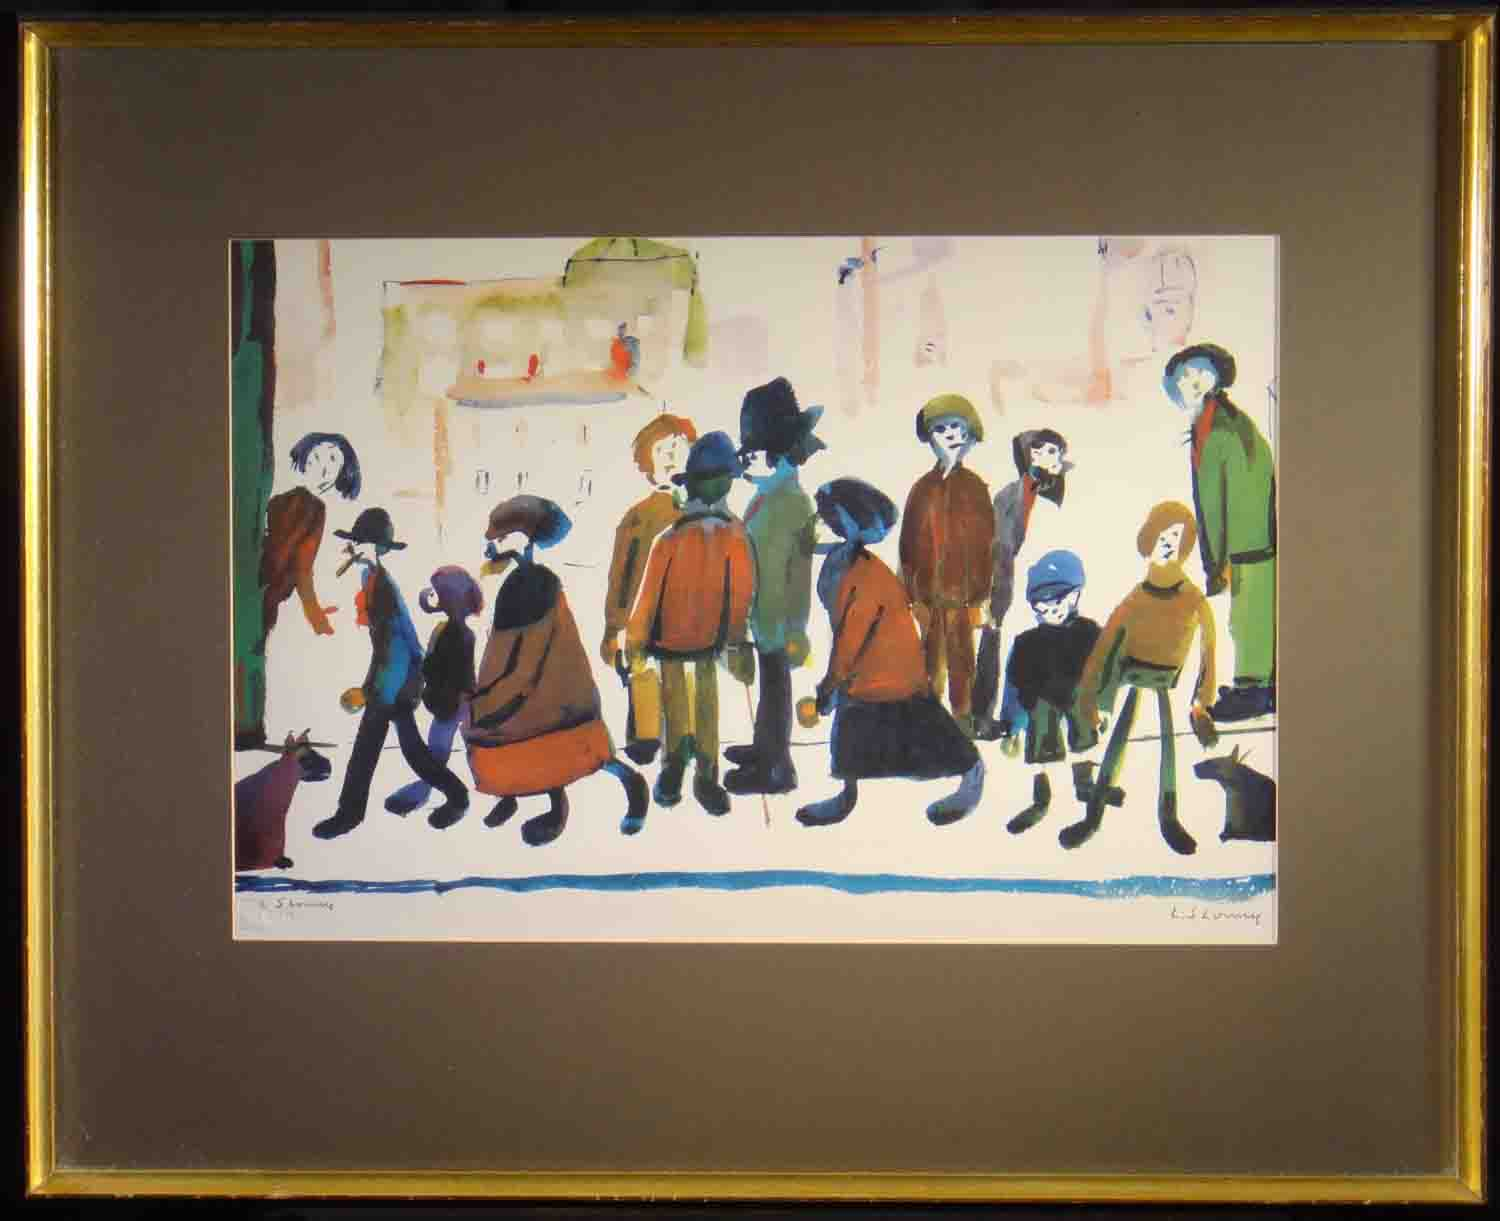 lowry, people standing about, framed, signed print lslowry